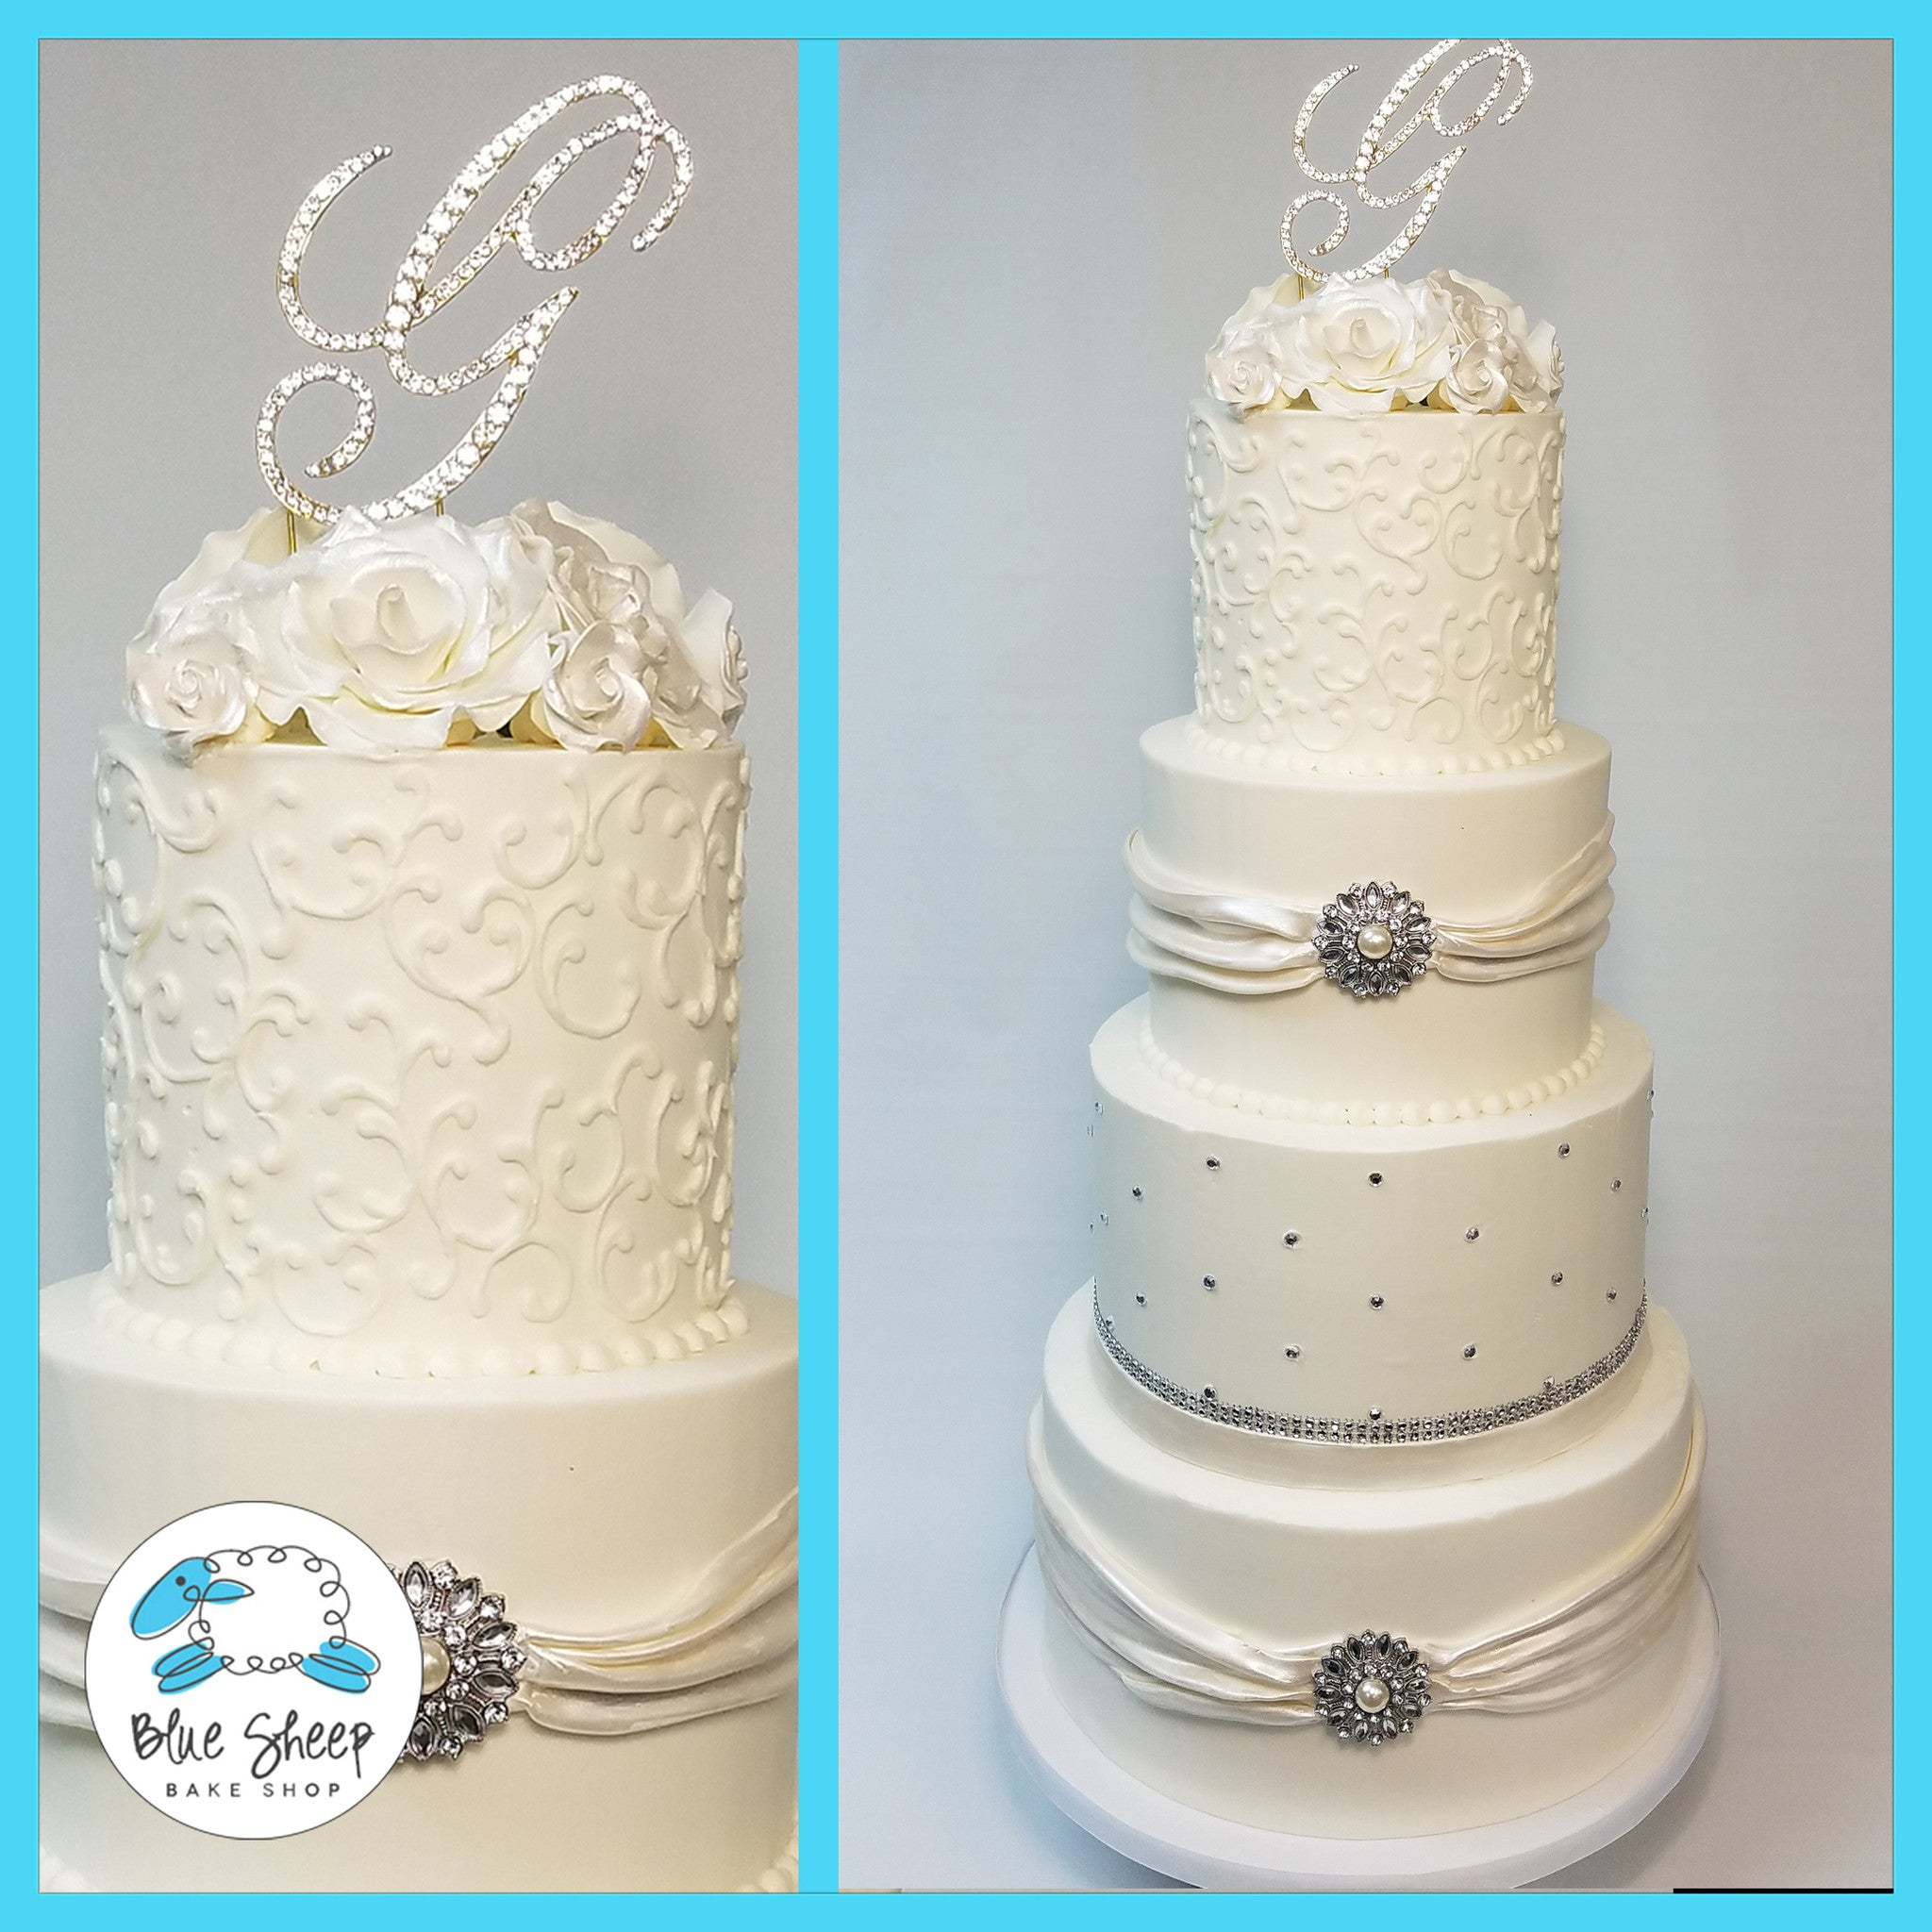 Crystals & Brooches Buttercream Wedding Cake NJ | Blue Sheep Bake Shop